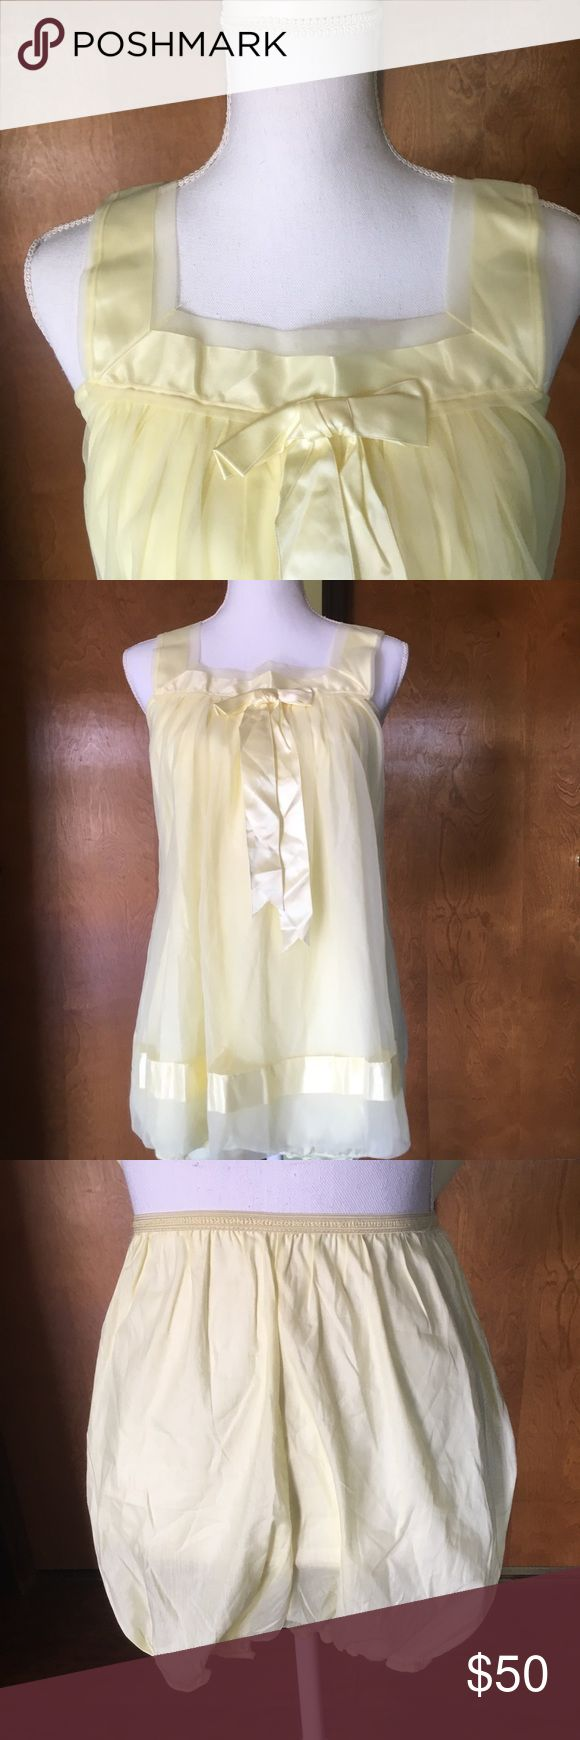 """Vintage Two Piece Lingerie Sleep Teddy Bloomers Unbelievable two piece vintage lingerie bed set. Pale yellow color with a silly bow on the top. High waisted matching bloomer style pants to go underneath. Just about 19"""" pit to pit. This set is tagged a size medium, but may also work as a looser look for a size small. Wear together or alone. Treat yourself to something extra special! Like new condition, no flaws to note b Vintage Intimates & Sleepwear Chemises & Slips"""